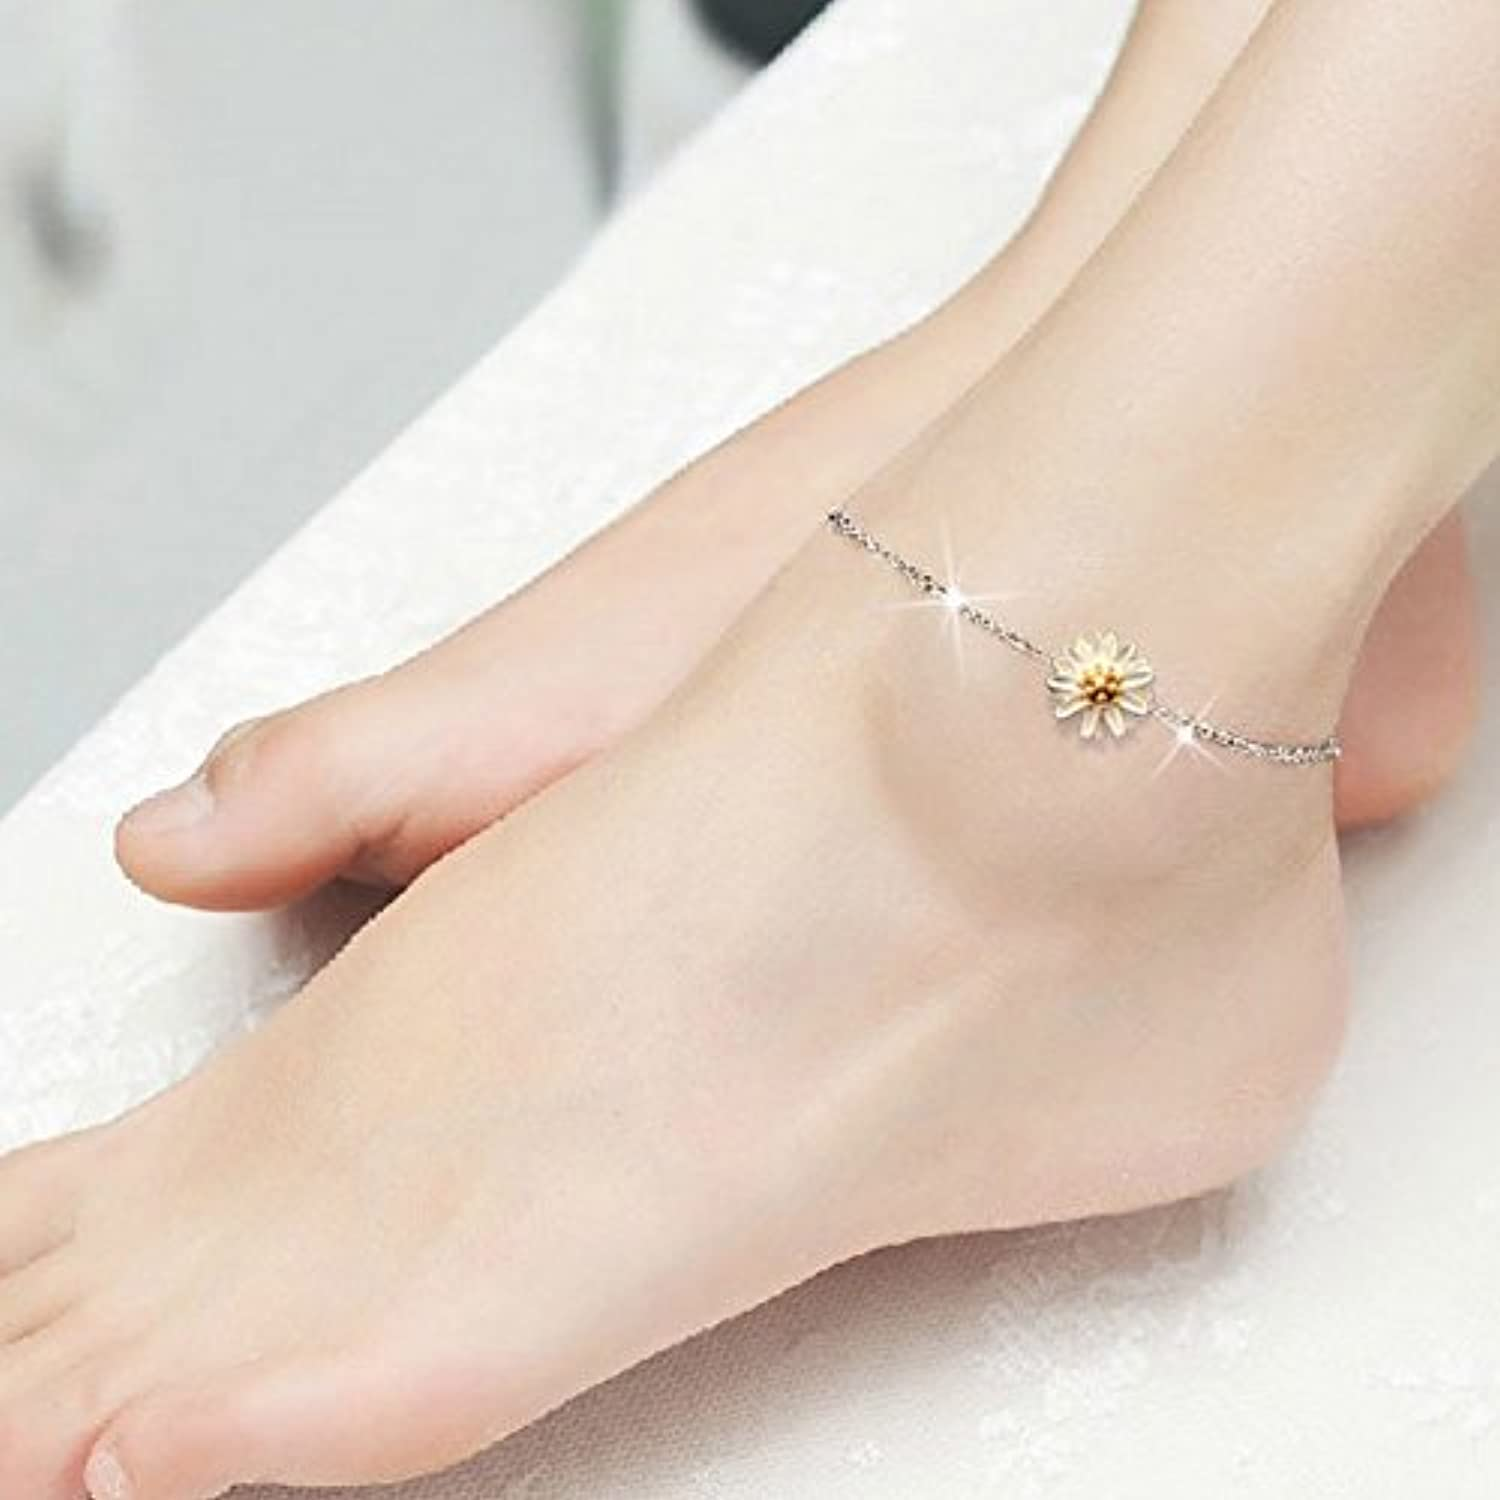 Women's s925 Sterling Silver Jewelry Gerbera Daisies Foot Chain Anklet Popular Series